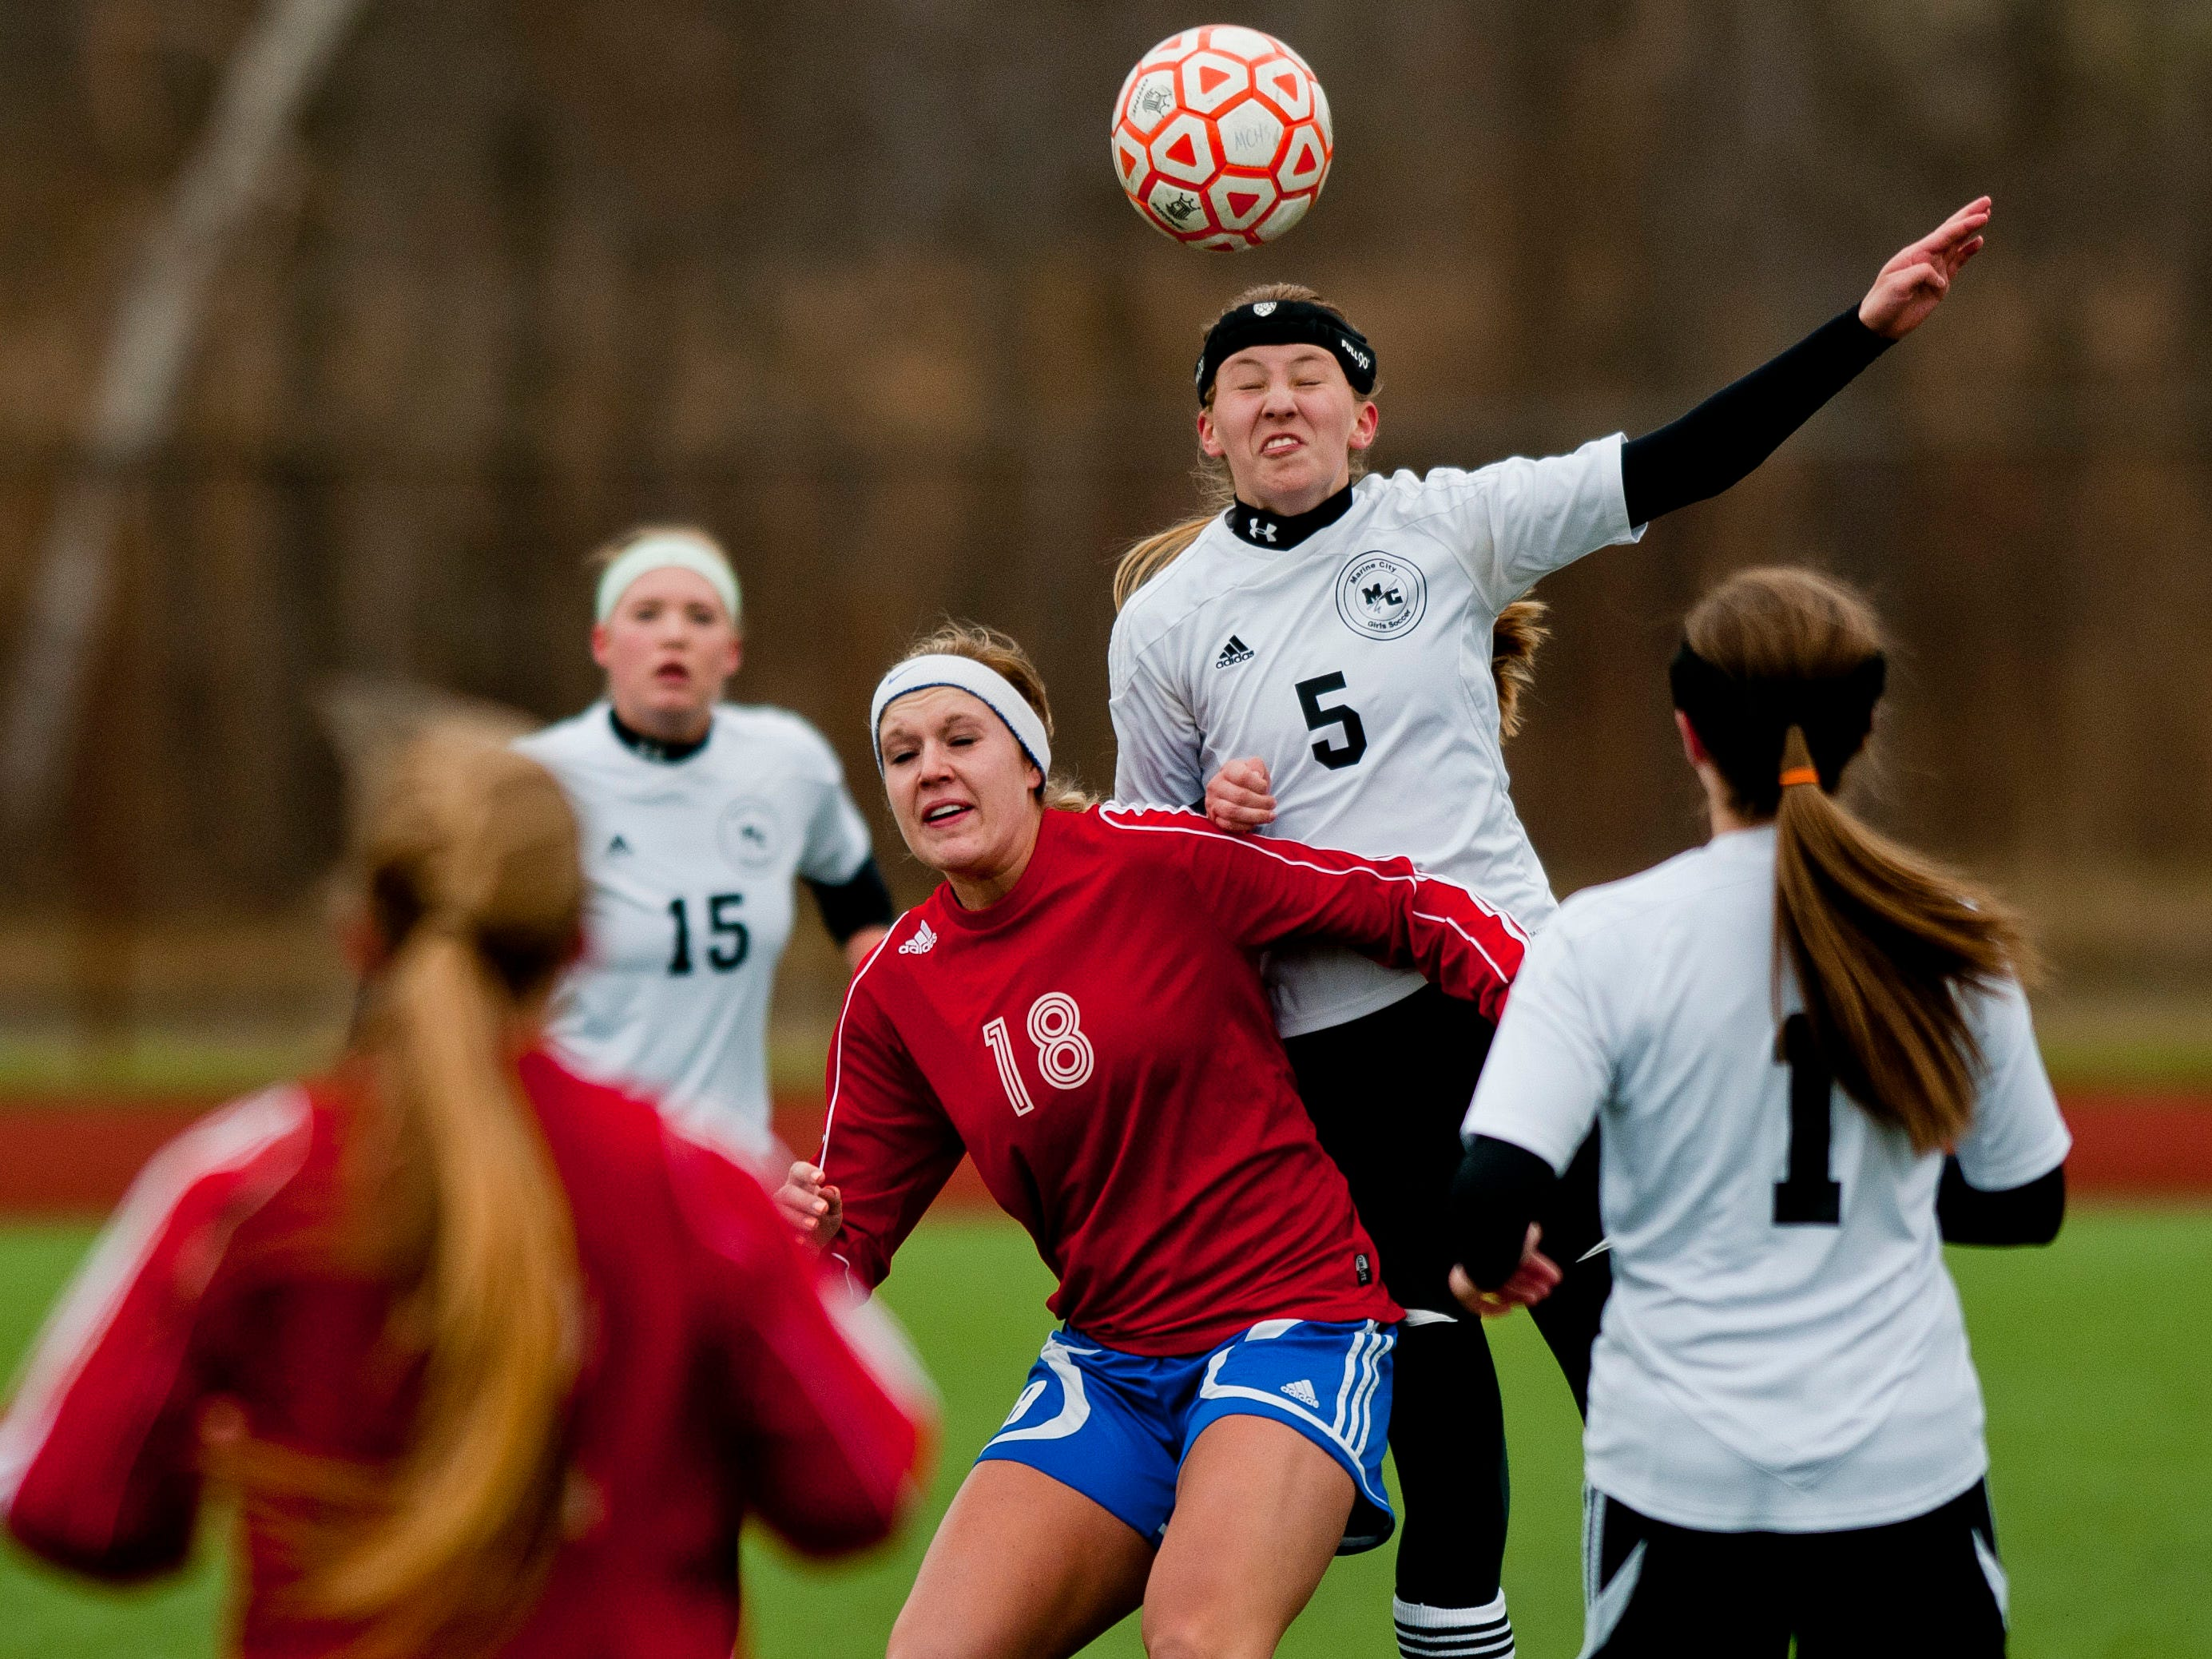 Marine City's Emilie Andrews heads the ball over St. Clair's Mackenzie Kent during a soccer game Wednesday at East China Stadium.